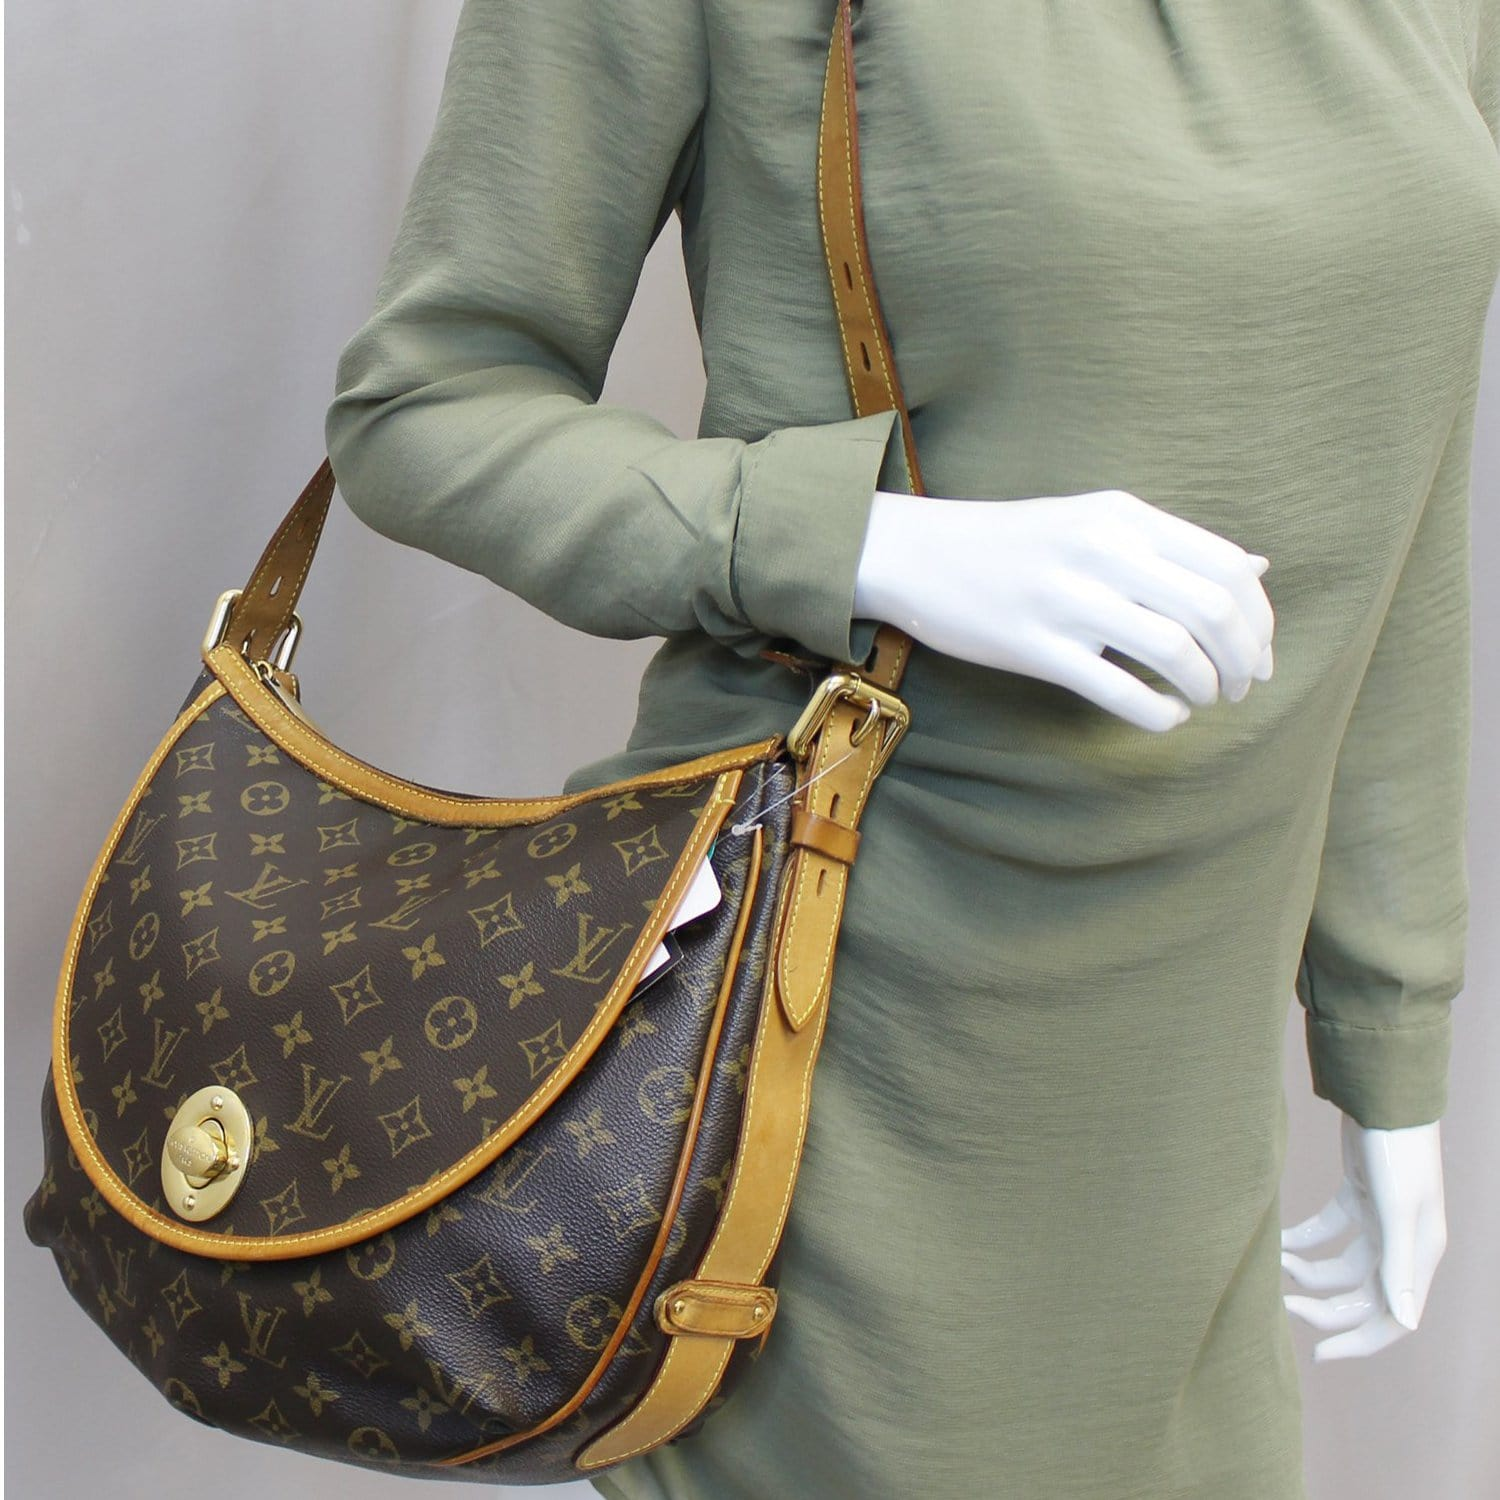 19c0d0a0a4fd LOUIS VUITTON Tulum GM Monogram Canvas Shoulder Bag